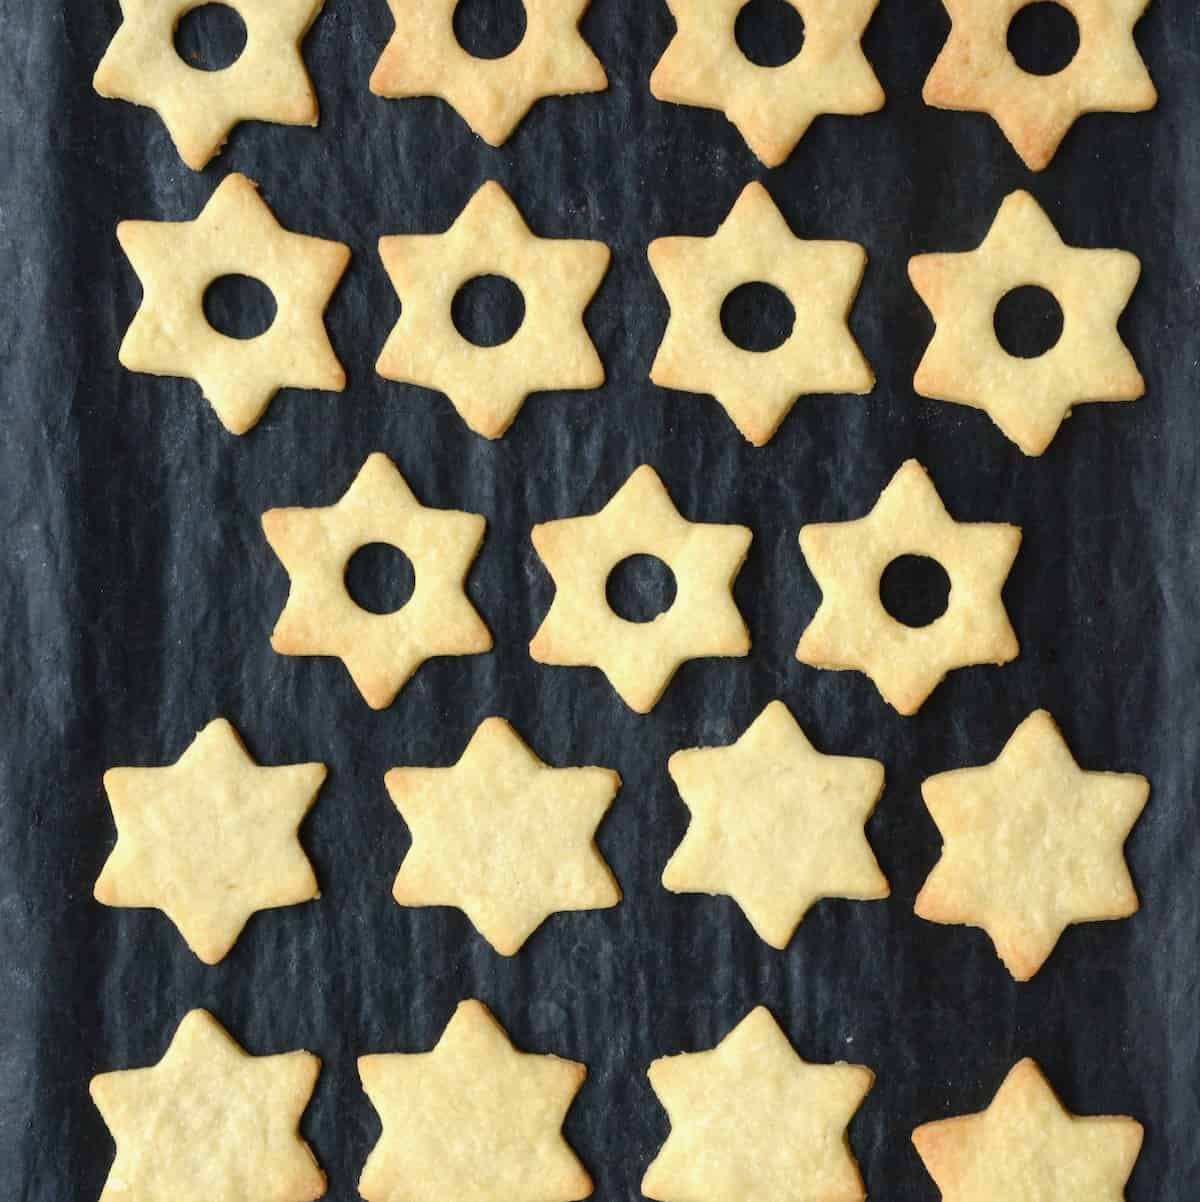 Baked, light brown star-shaped cookies on a baking tray.